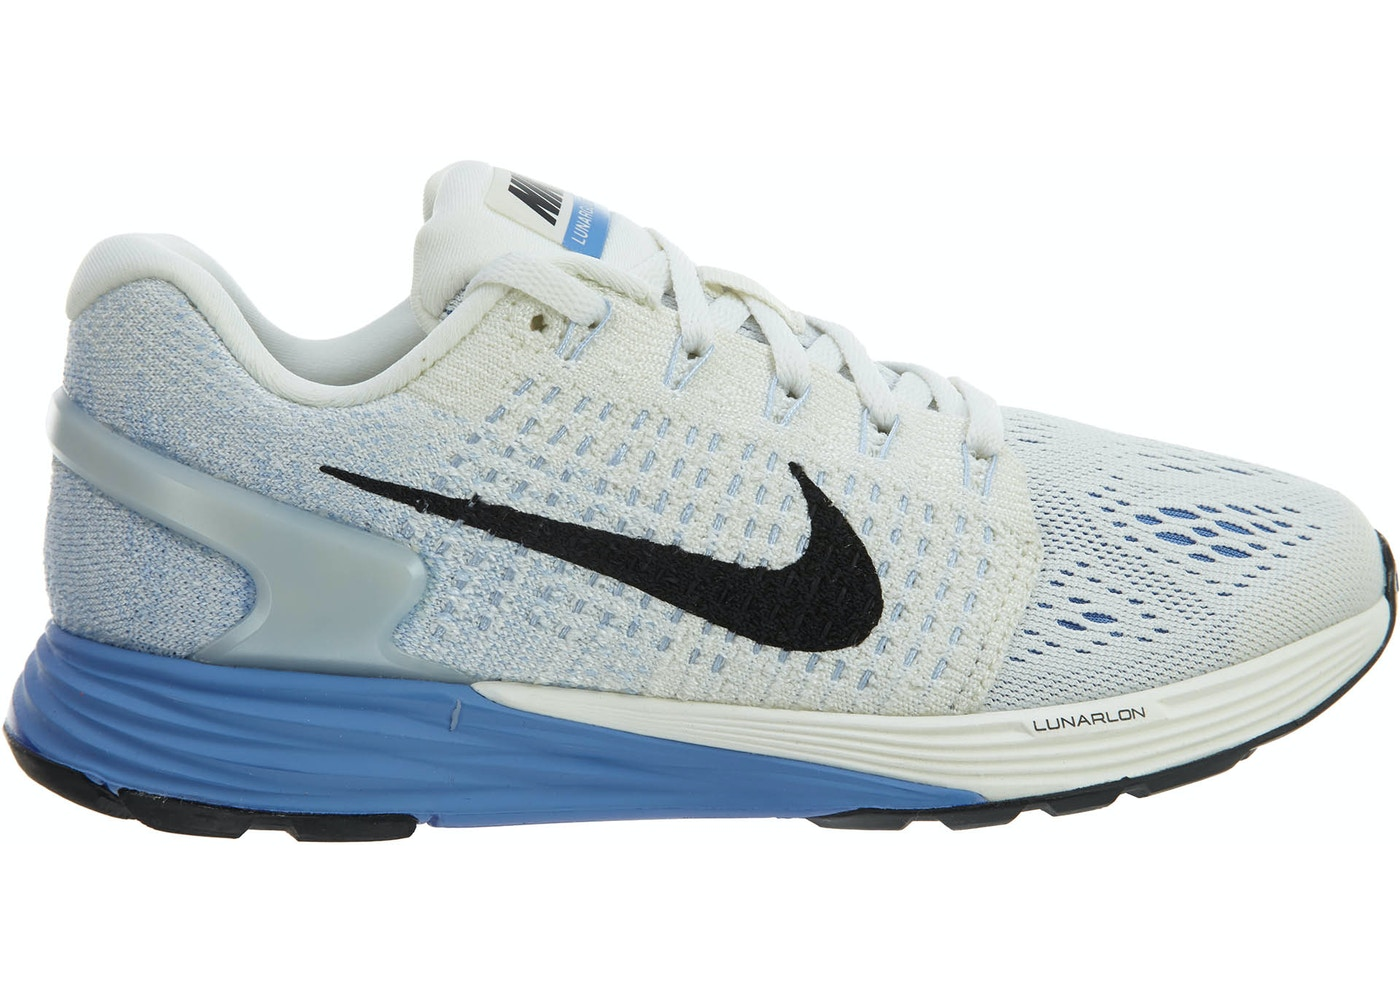 f0796d93d1ef Sell. or Ask. Size  8W. View All Bids. Nike Lunarglide 7 Sail Black-Chalk  Blue-Pure Platinum ...